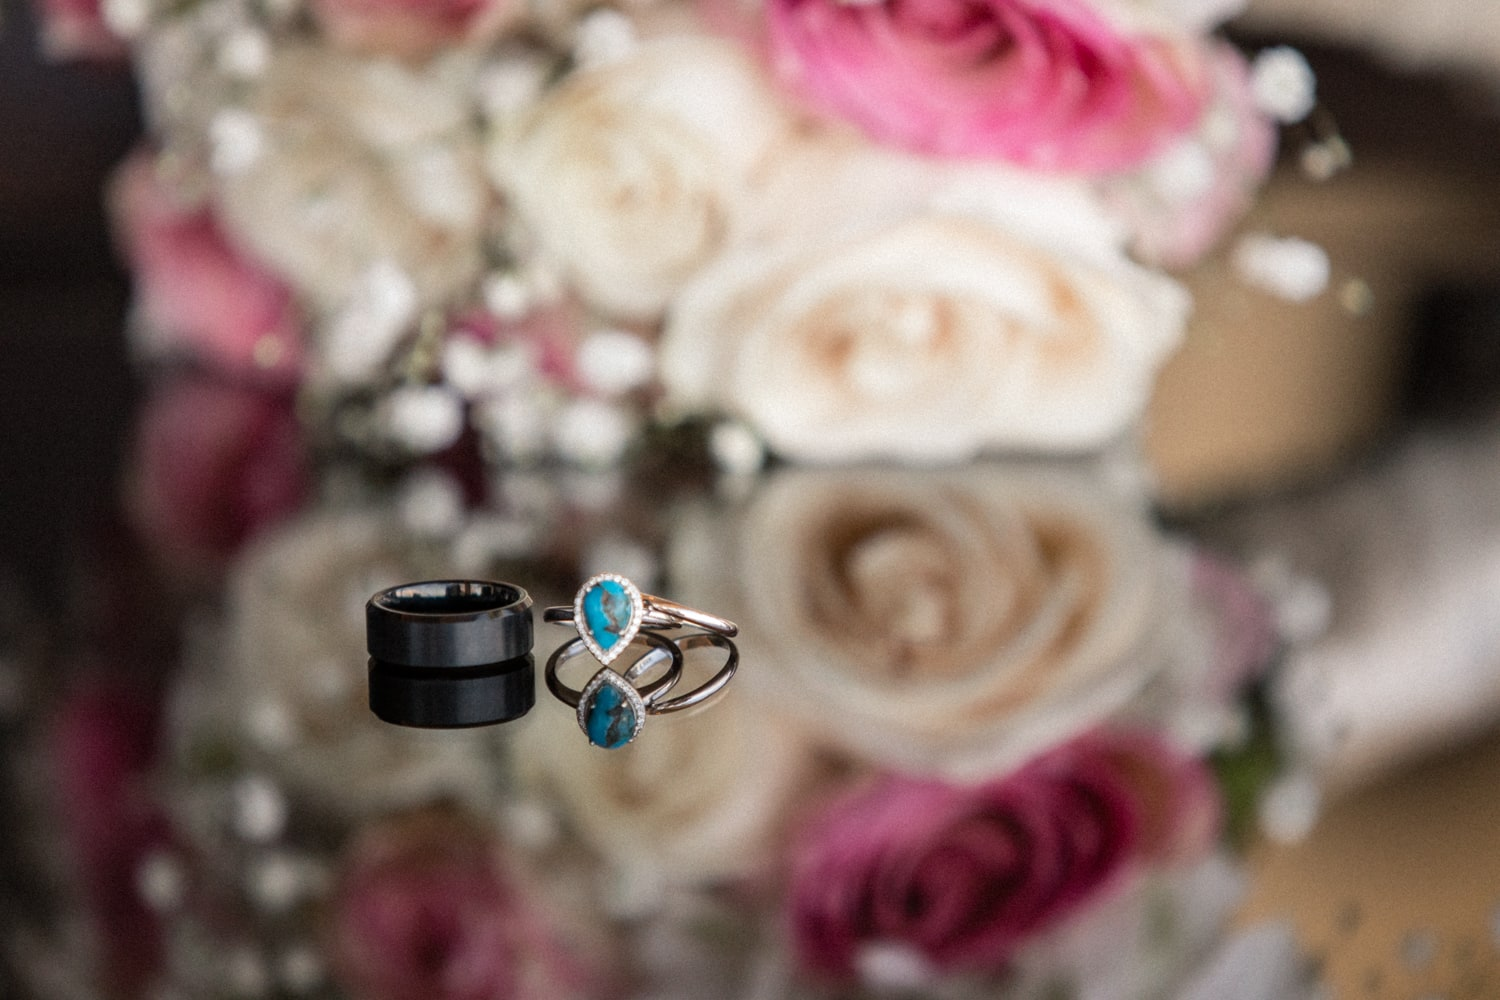 Wedding rings on glass table in front of bridal bouquet.